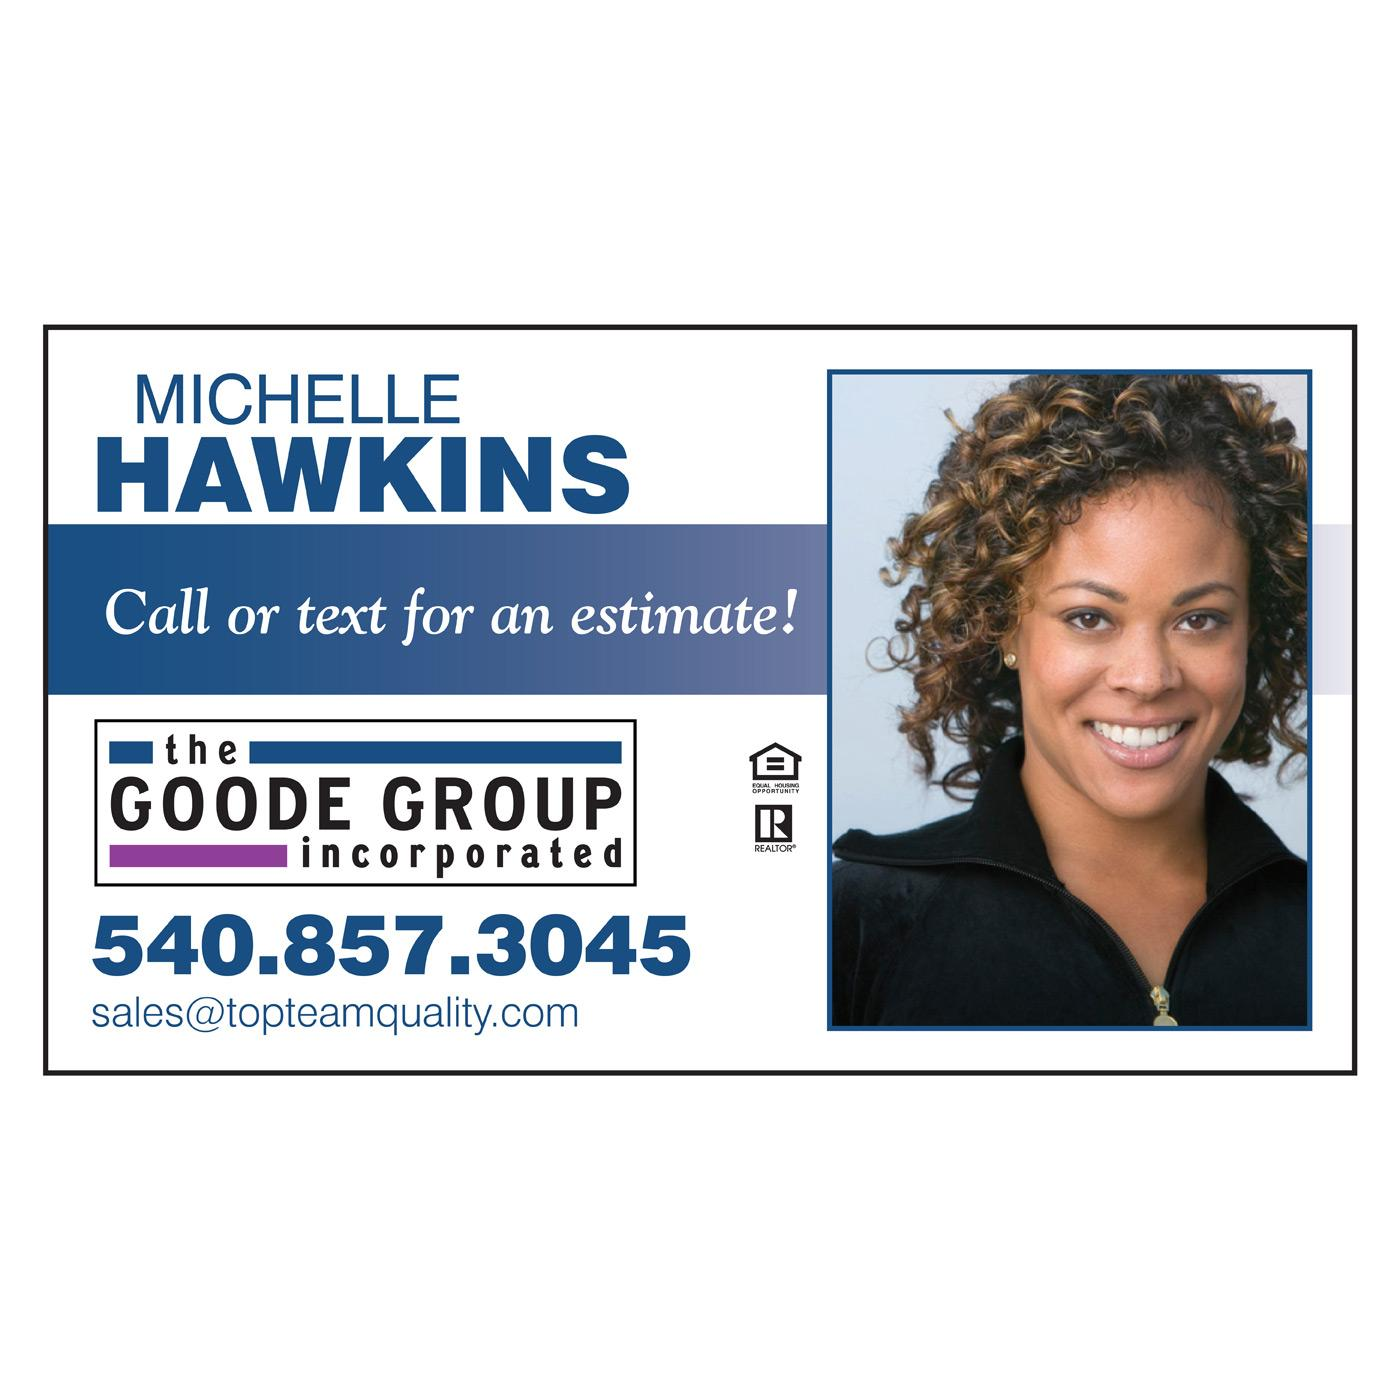 Bestselling realtor business card